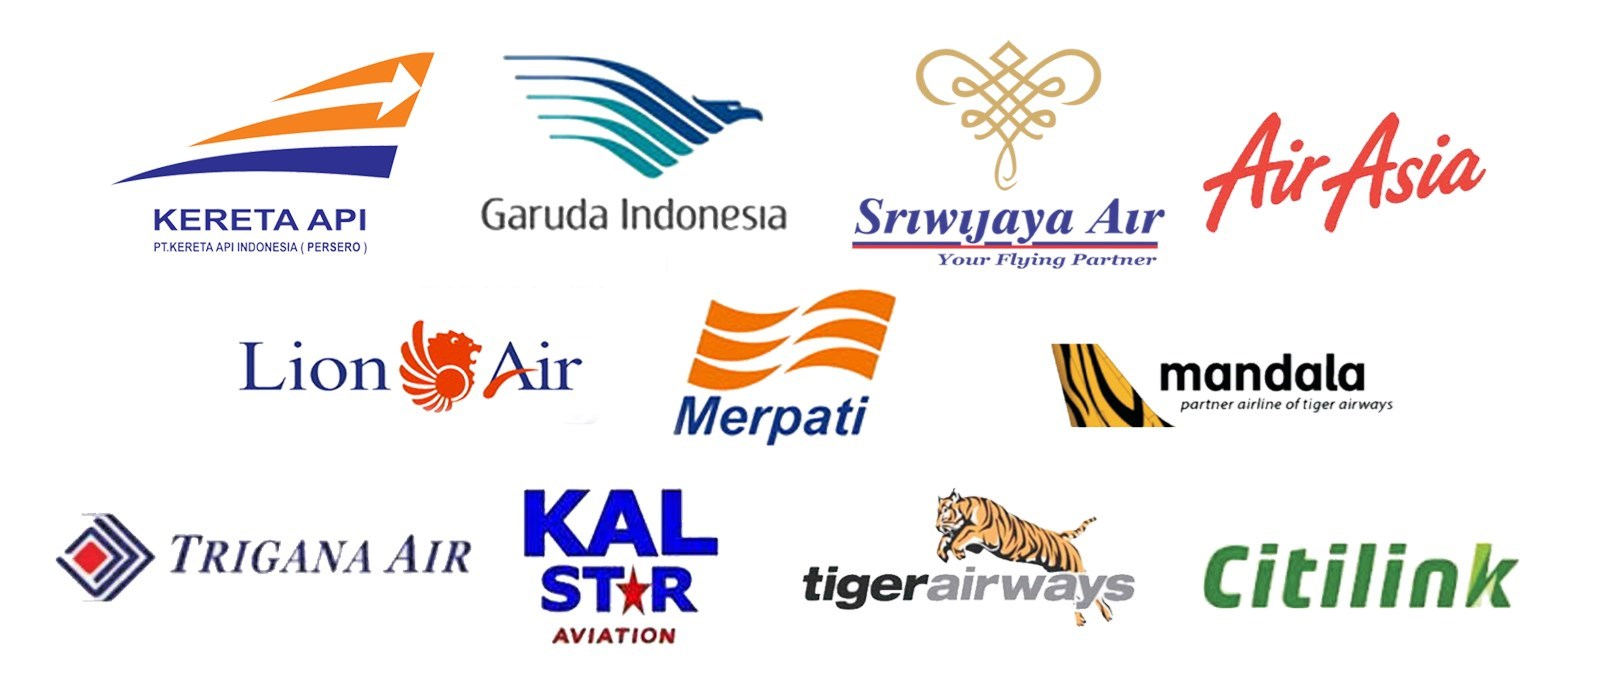 marketing and segmentation in garuda indonesia and citilink Citilink indonesia has become the fastest growing airline in indonesia since 2011 at the time when it took the first airbus a320 aircraft and accelerated growth as part of garuda group's effort to compete aggressively on the budget traveler segment.